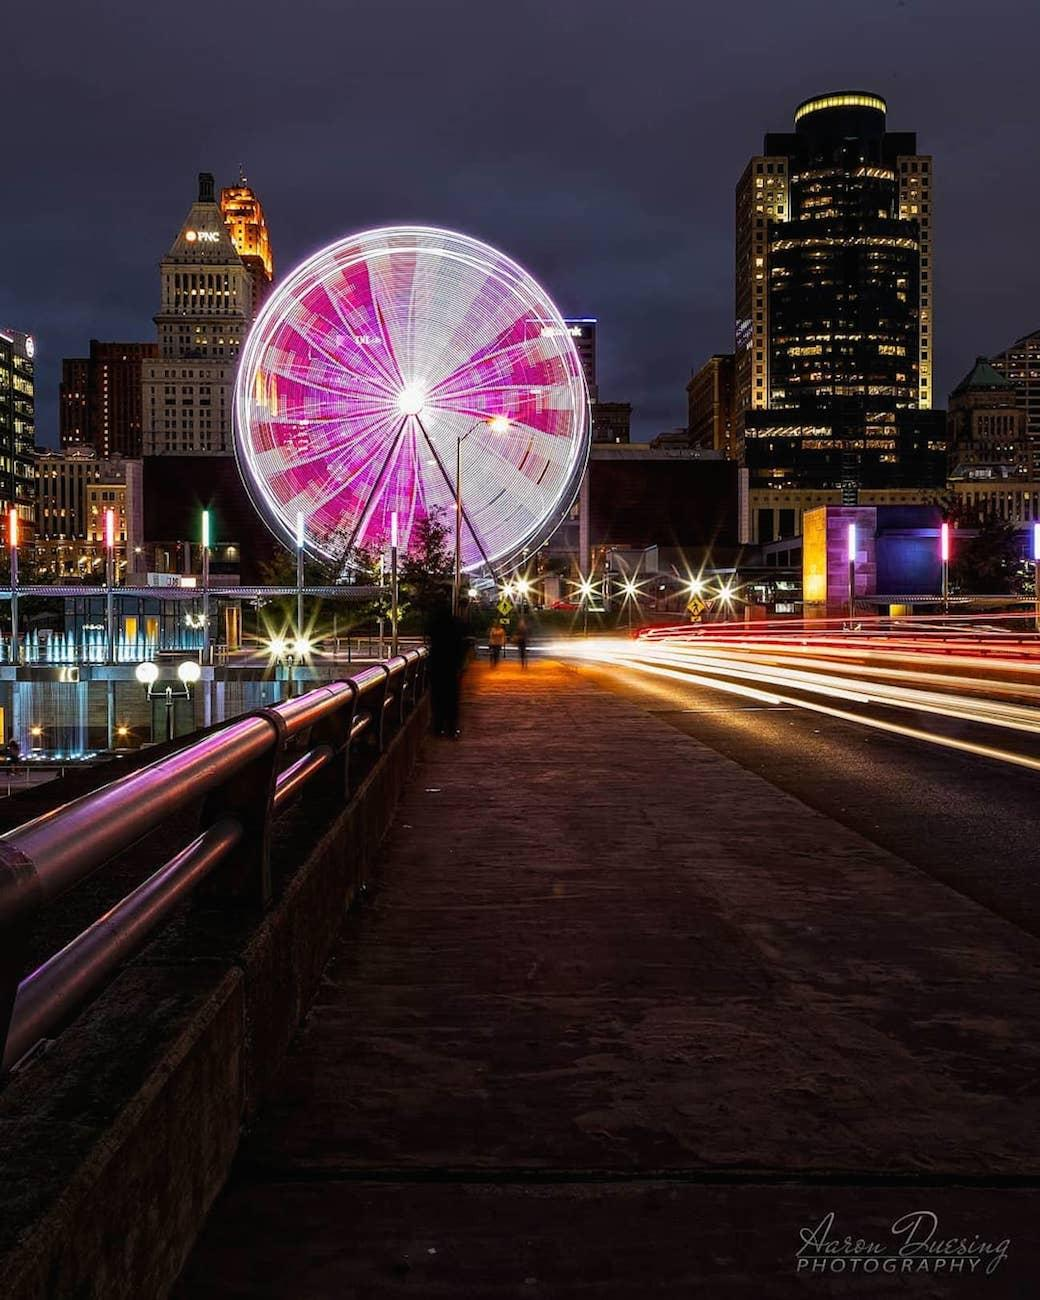 The SkyStar is the largest traveling observation wheel in the country. Guests are carried in gondolas up almost 15 stories high while overlooking the Ohio River. The 36 carriers are climate-controlled and can hold up to six people. The magnificent structure will only call The Banks its home through December 2nd before it's packed up and rolled to a new city. SkyStar runs daily, and tickets are $12.50. ADDRESS: 55 East Freedom Way (45202) / Image courtesy of Instagram user @aduesing1210 // Published 9.12.18